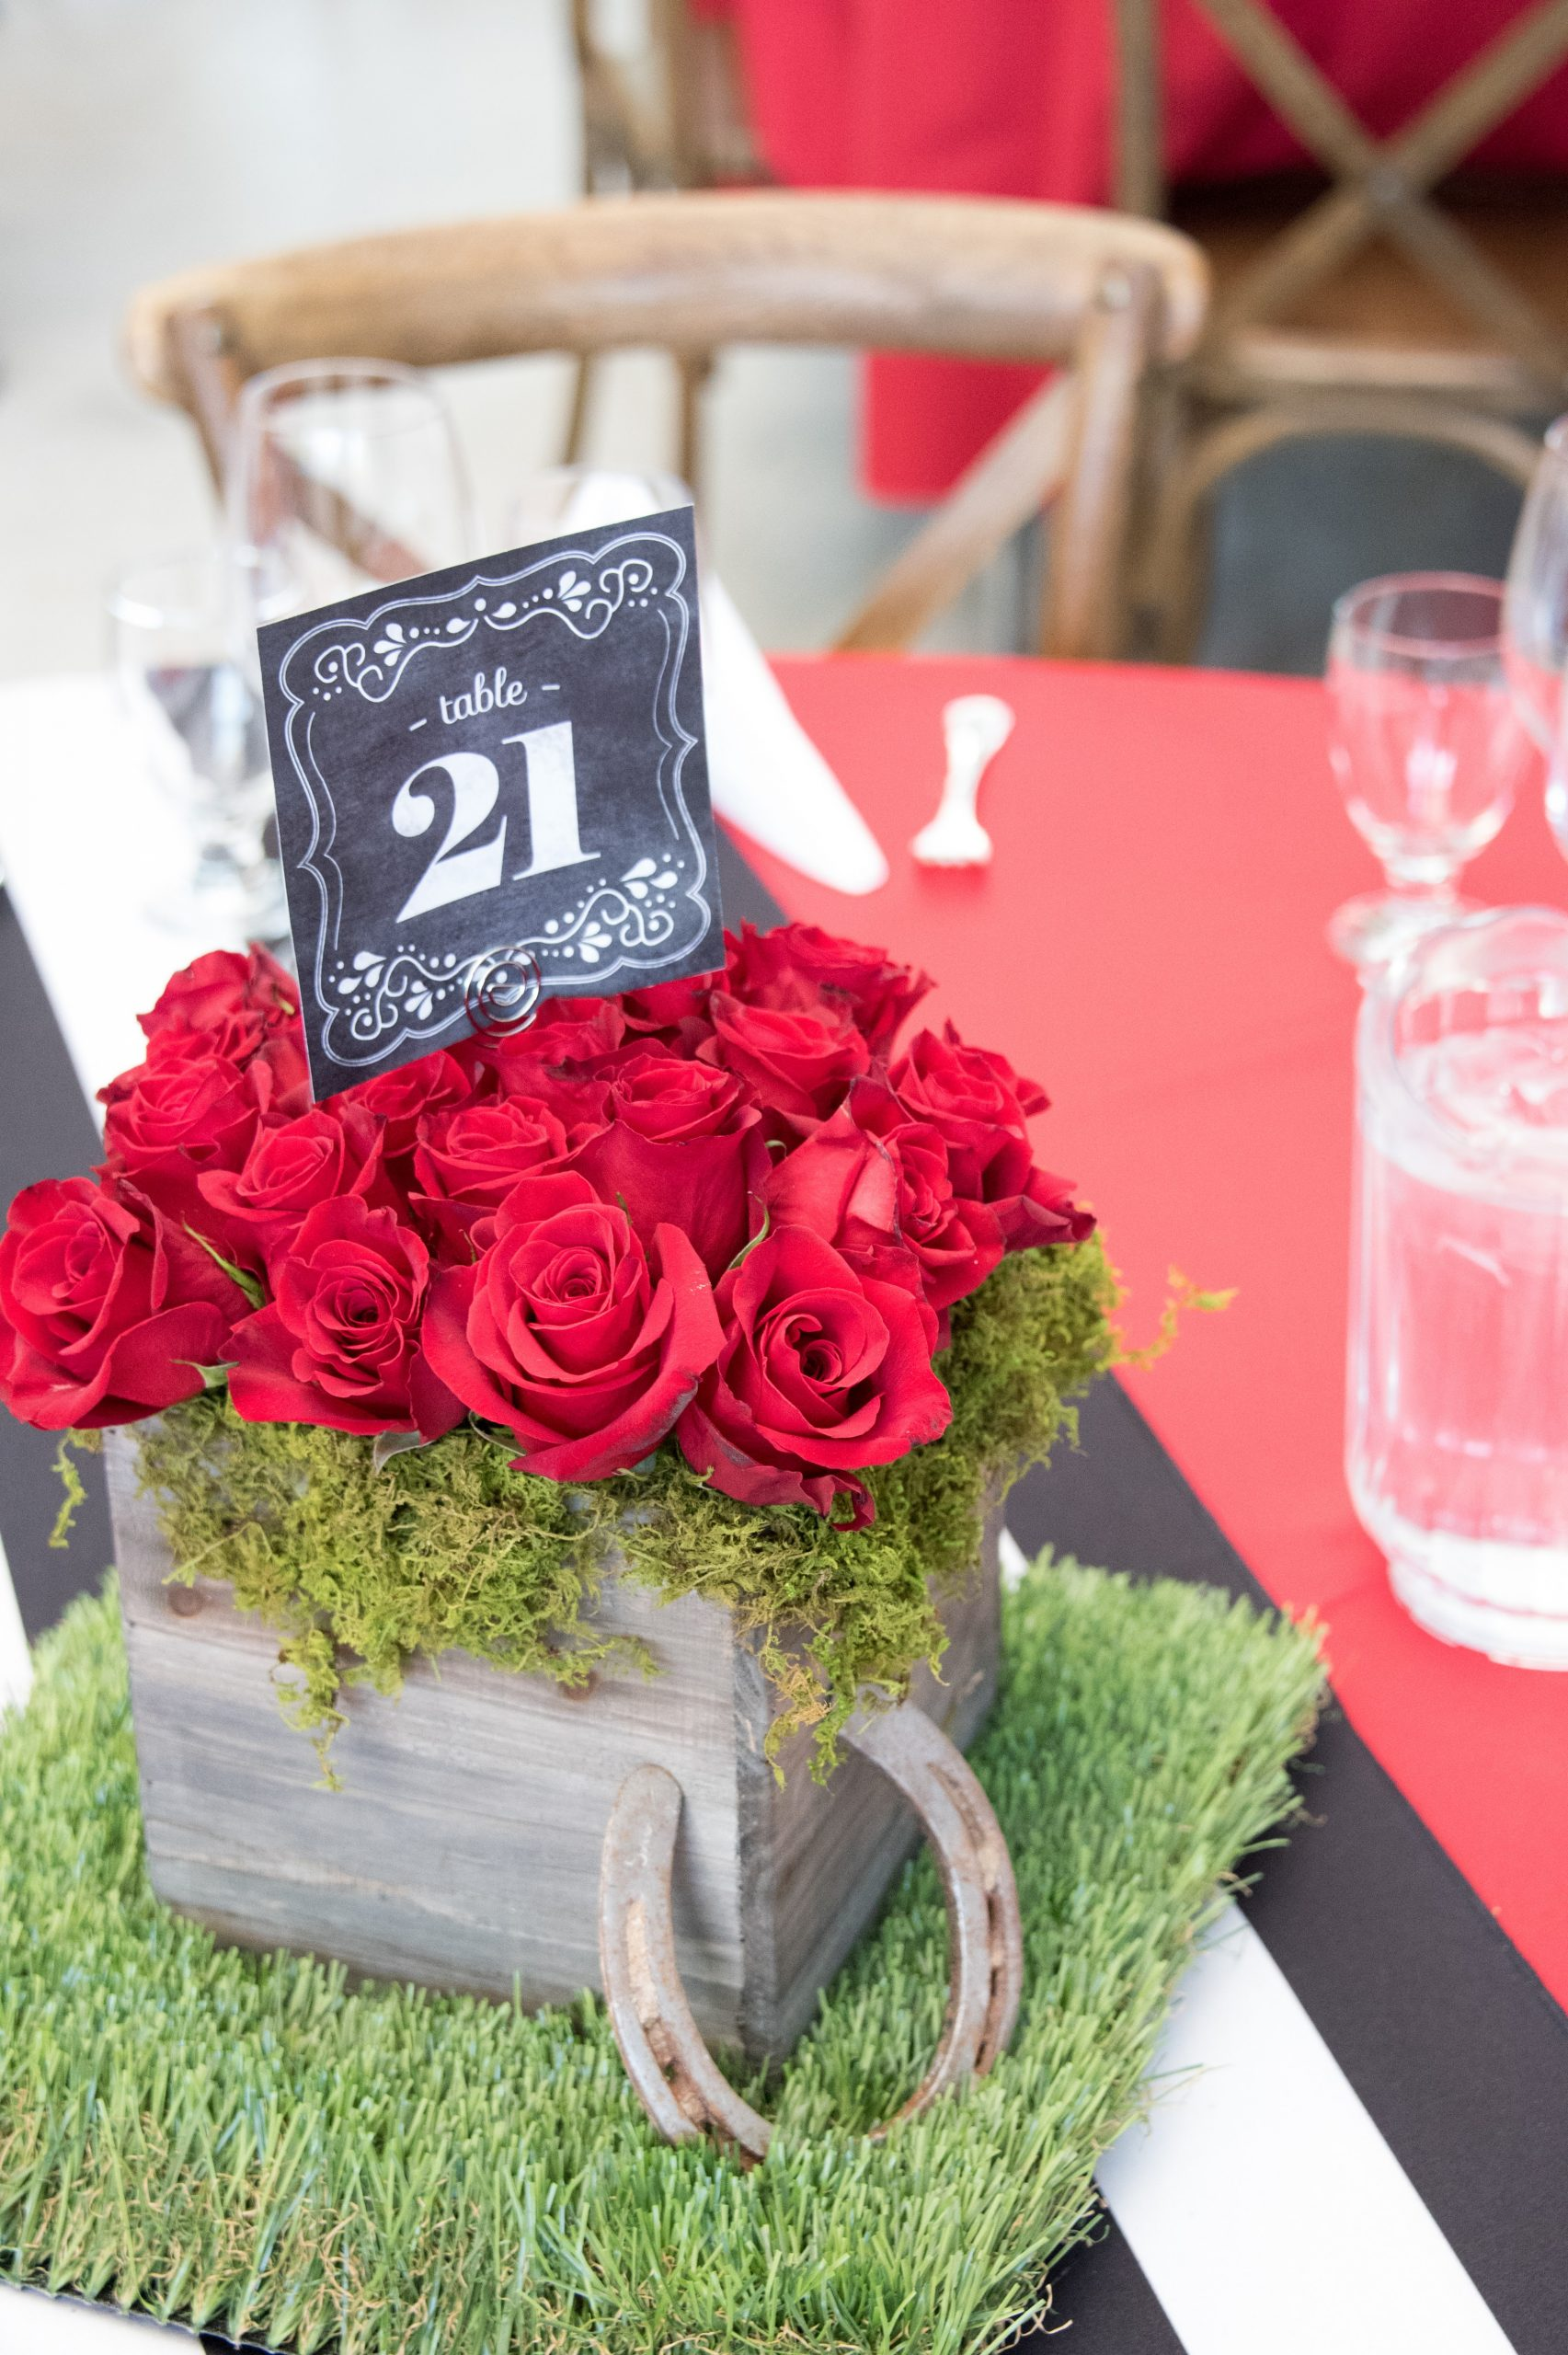 Photo of wooden box container on top of a patch of grass with red roses and the number 21